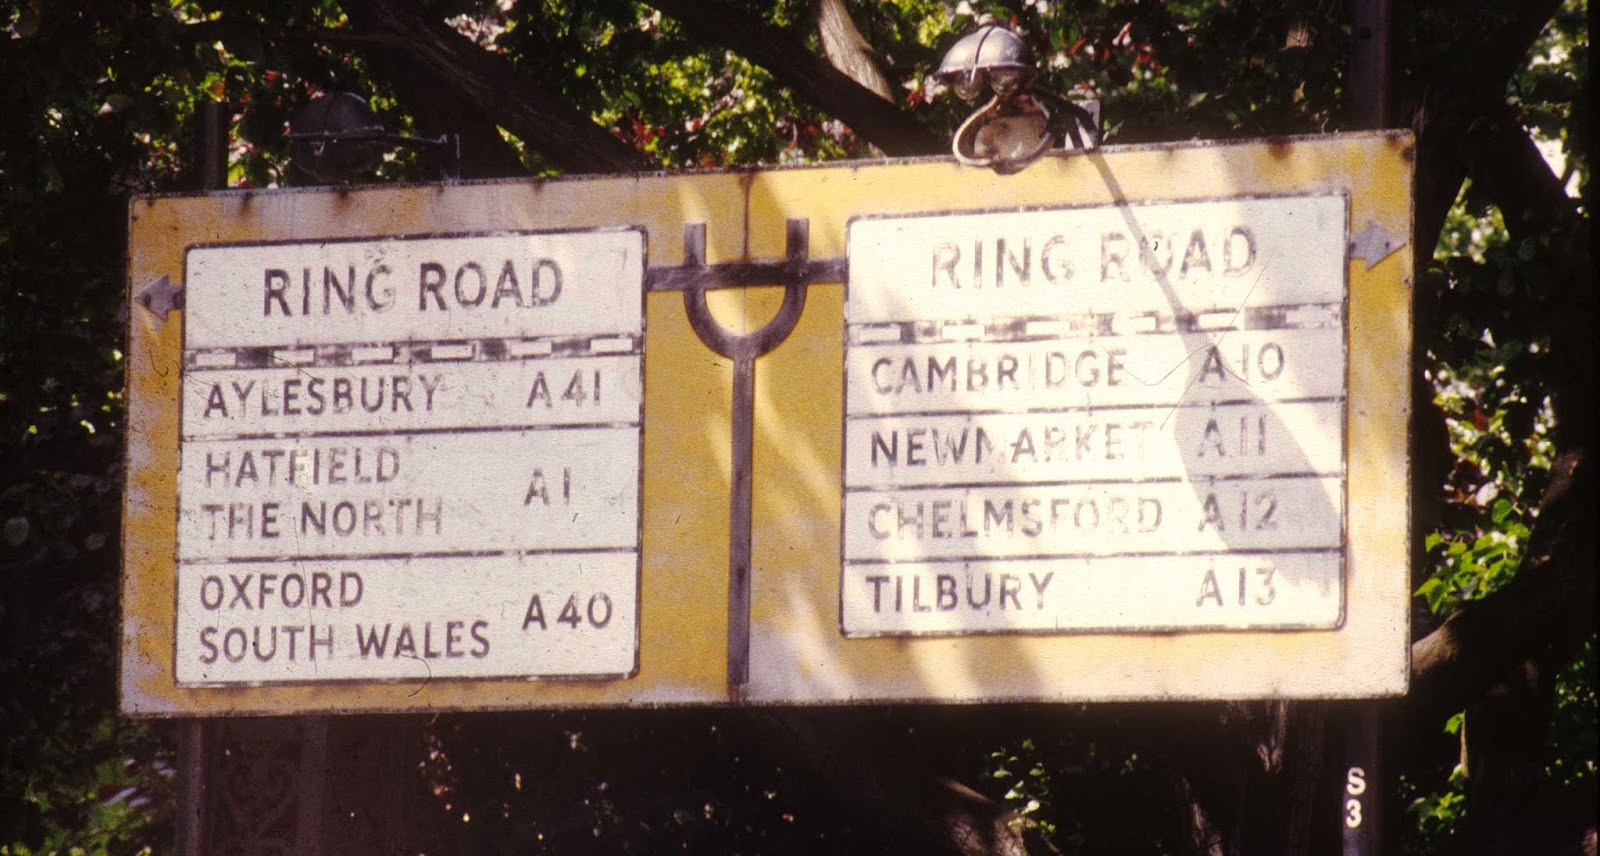 Hatfield and the North band name explanation - Signpost